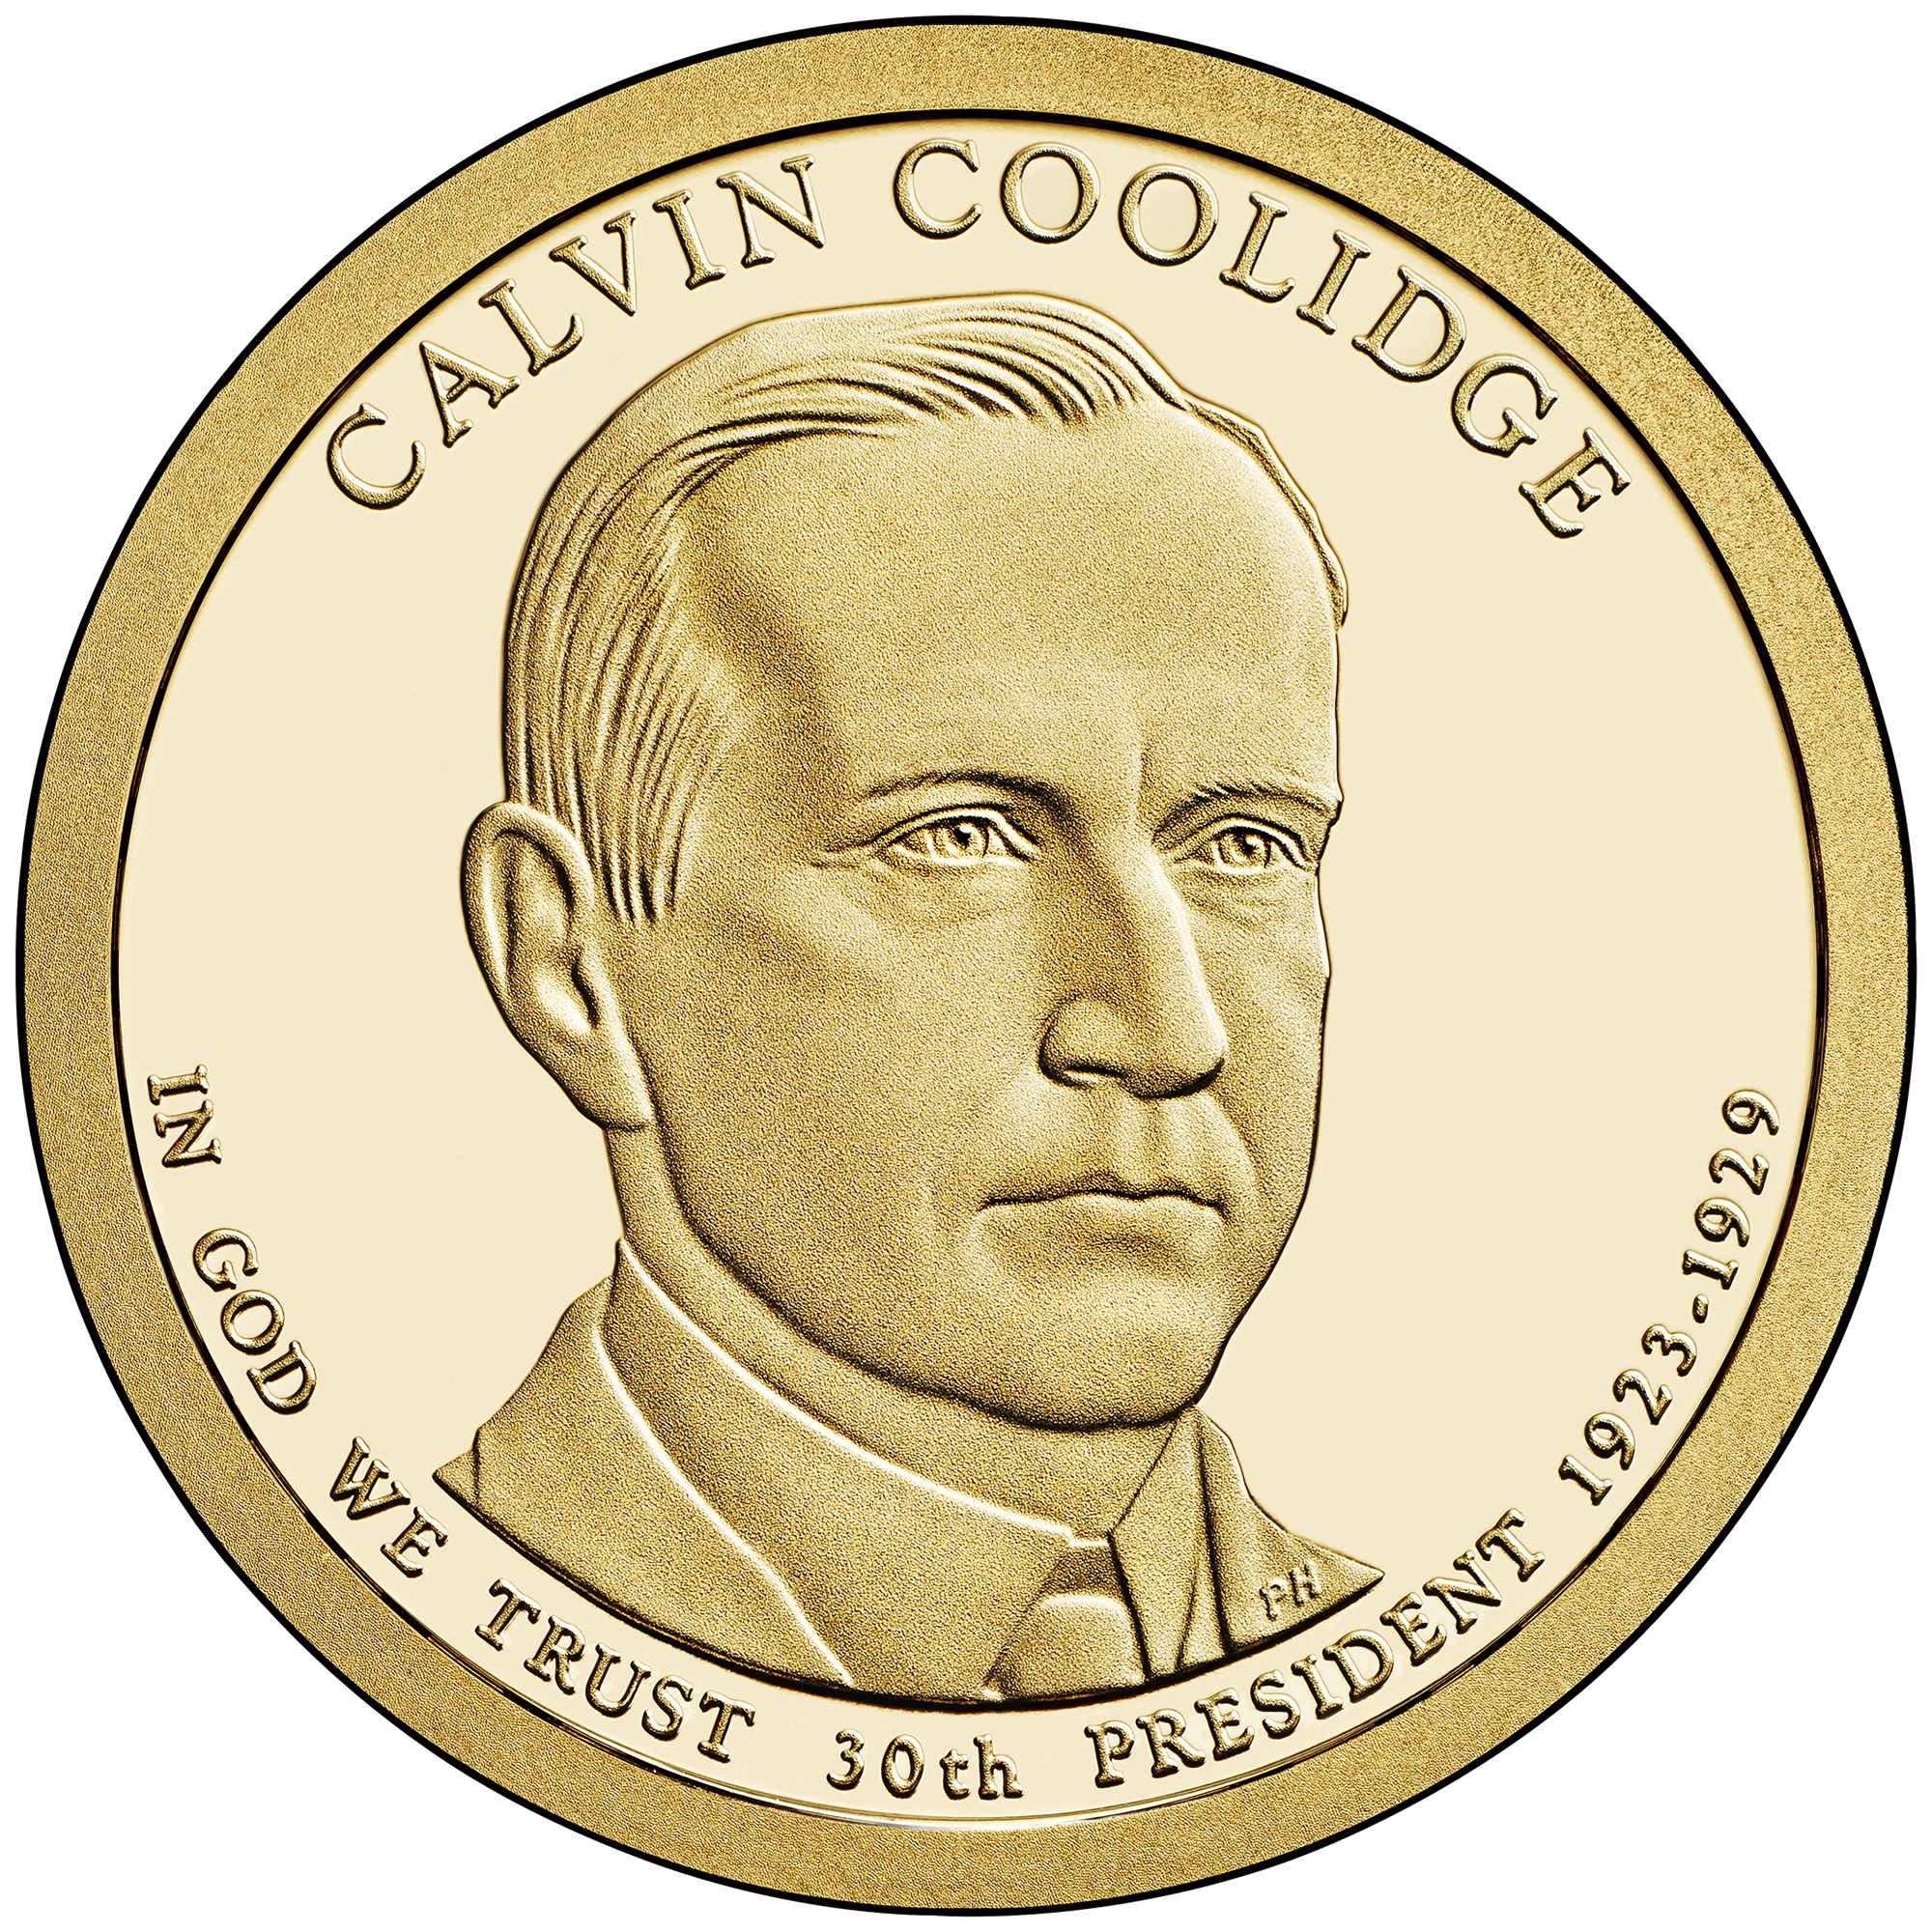 File:2014 Coolidge Coin.png - Coin HD PNG